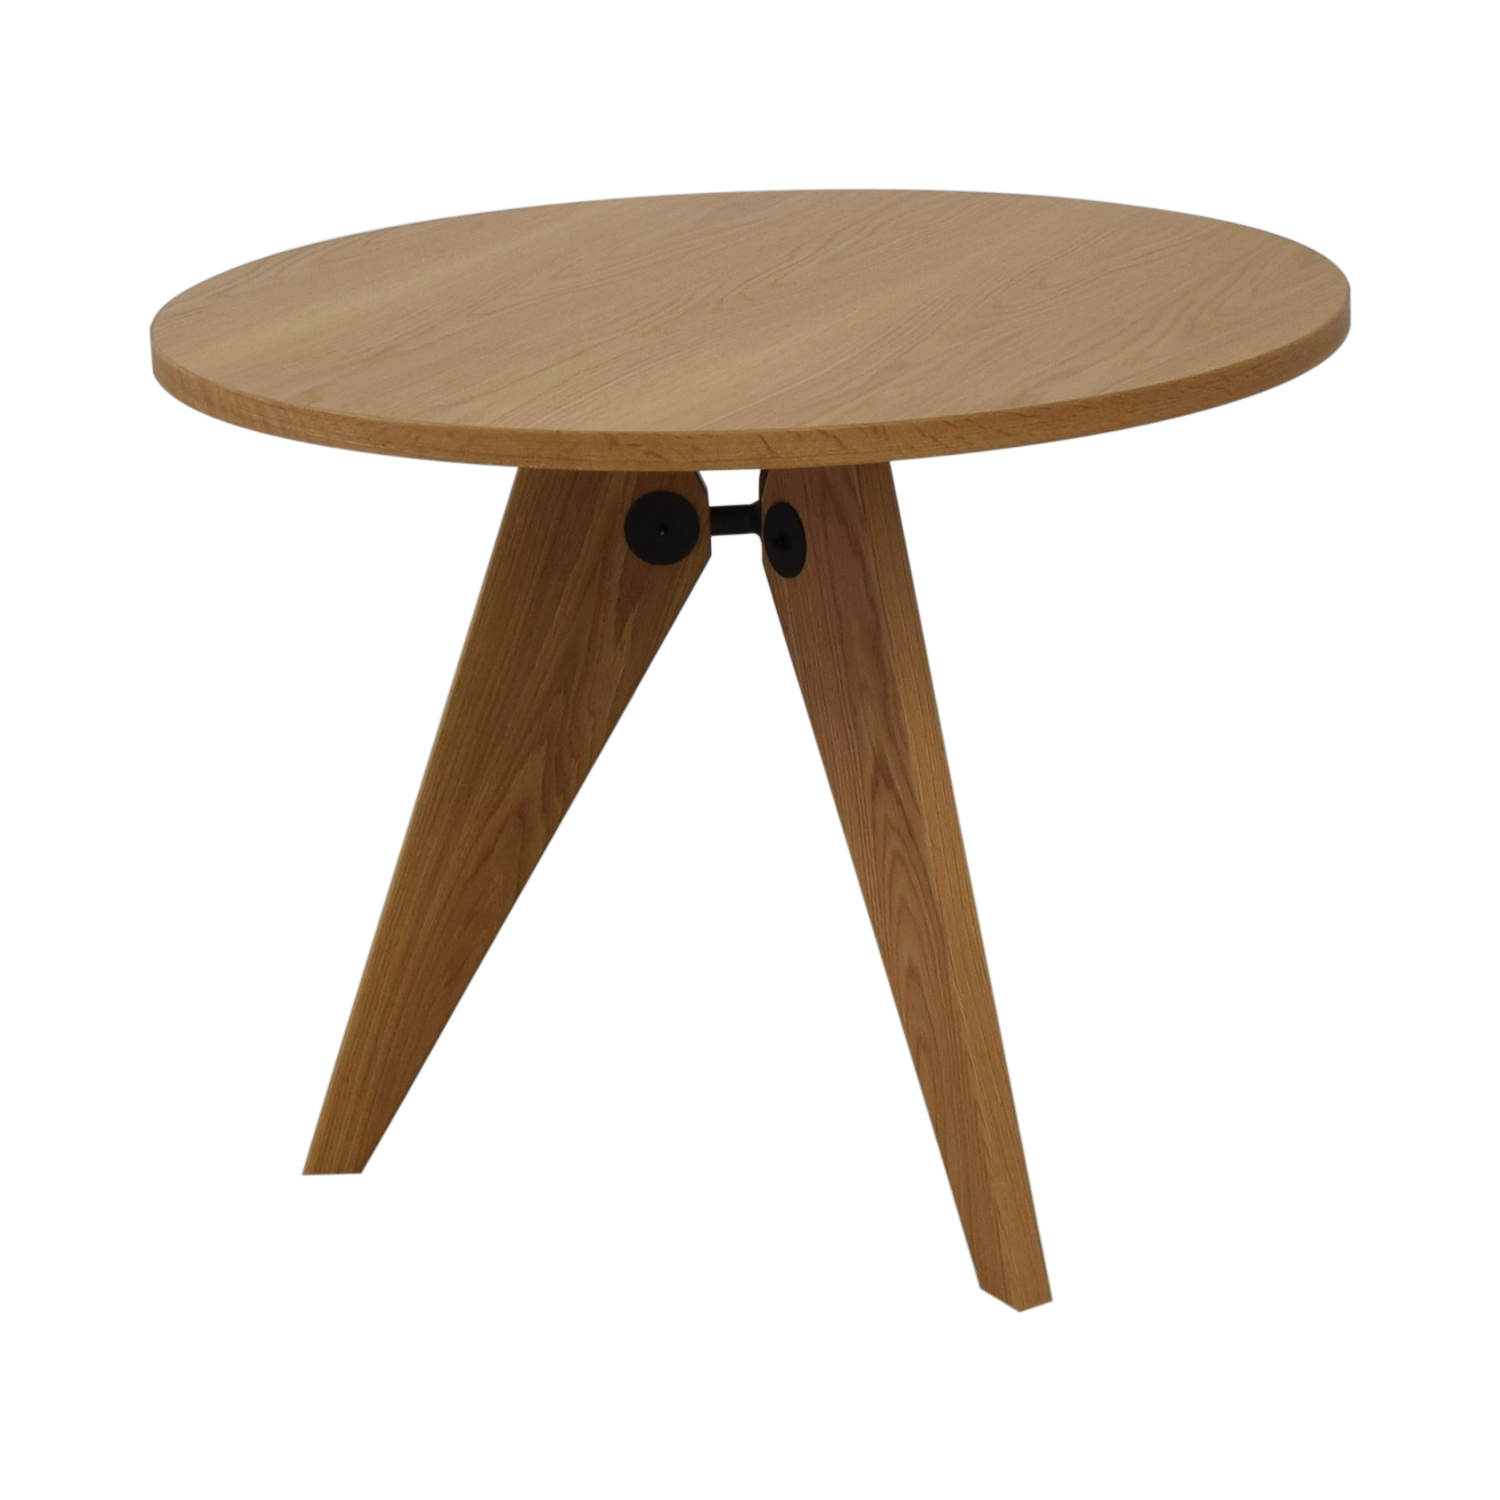 Control Brand Control Brand Mid Century Dining Table second hand